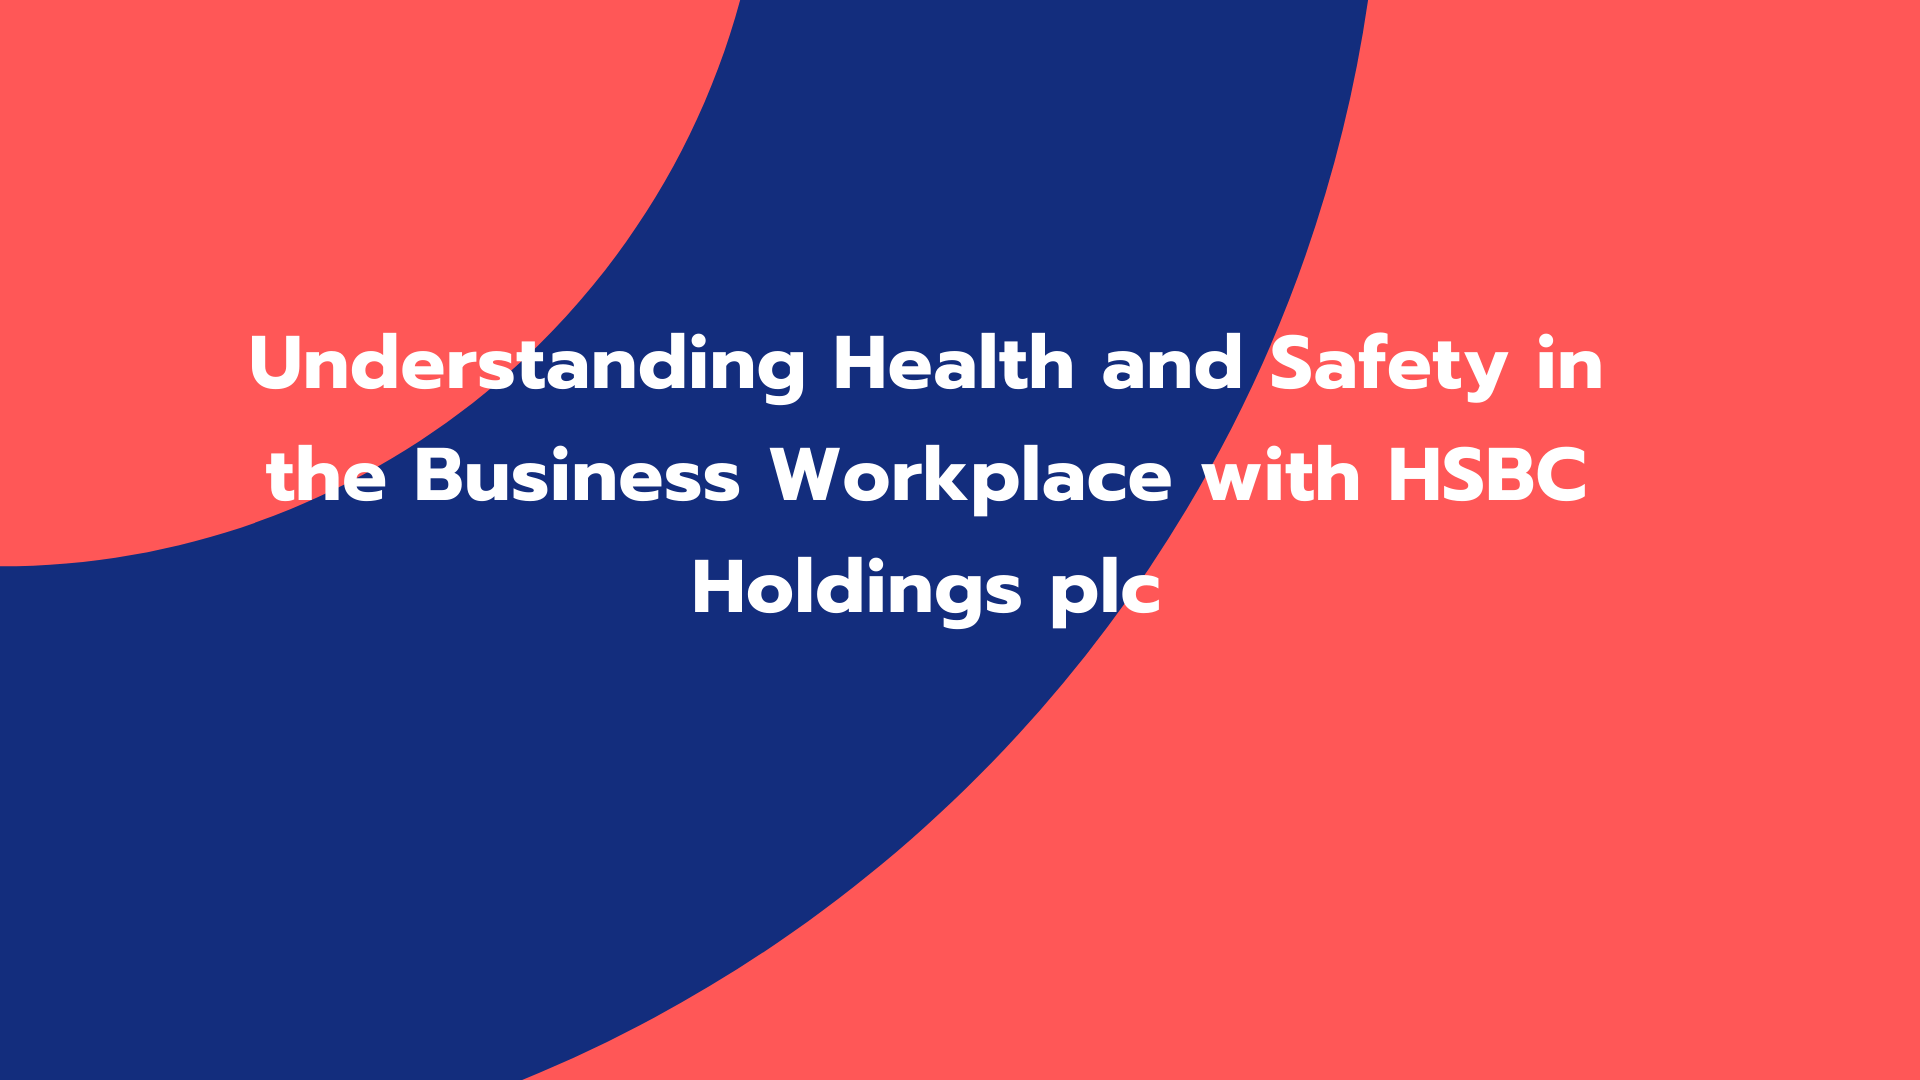 Understanding Health and Safety in the Business Workplace with HSBC Holdings plc